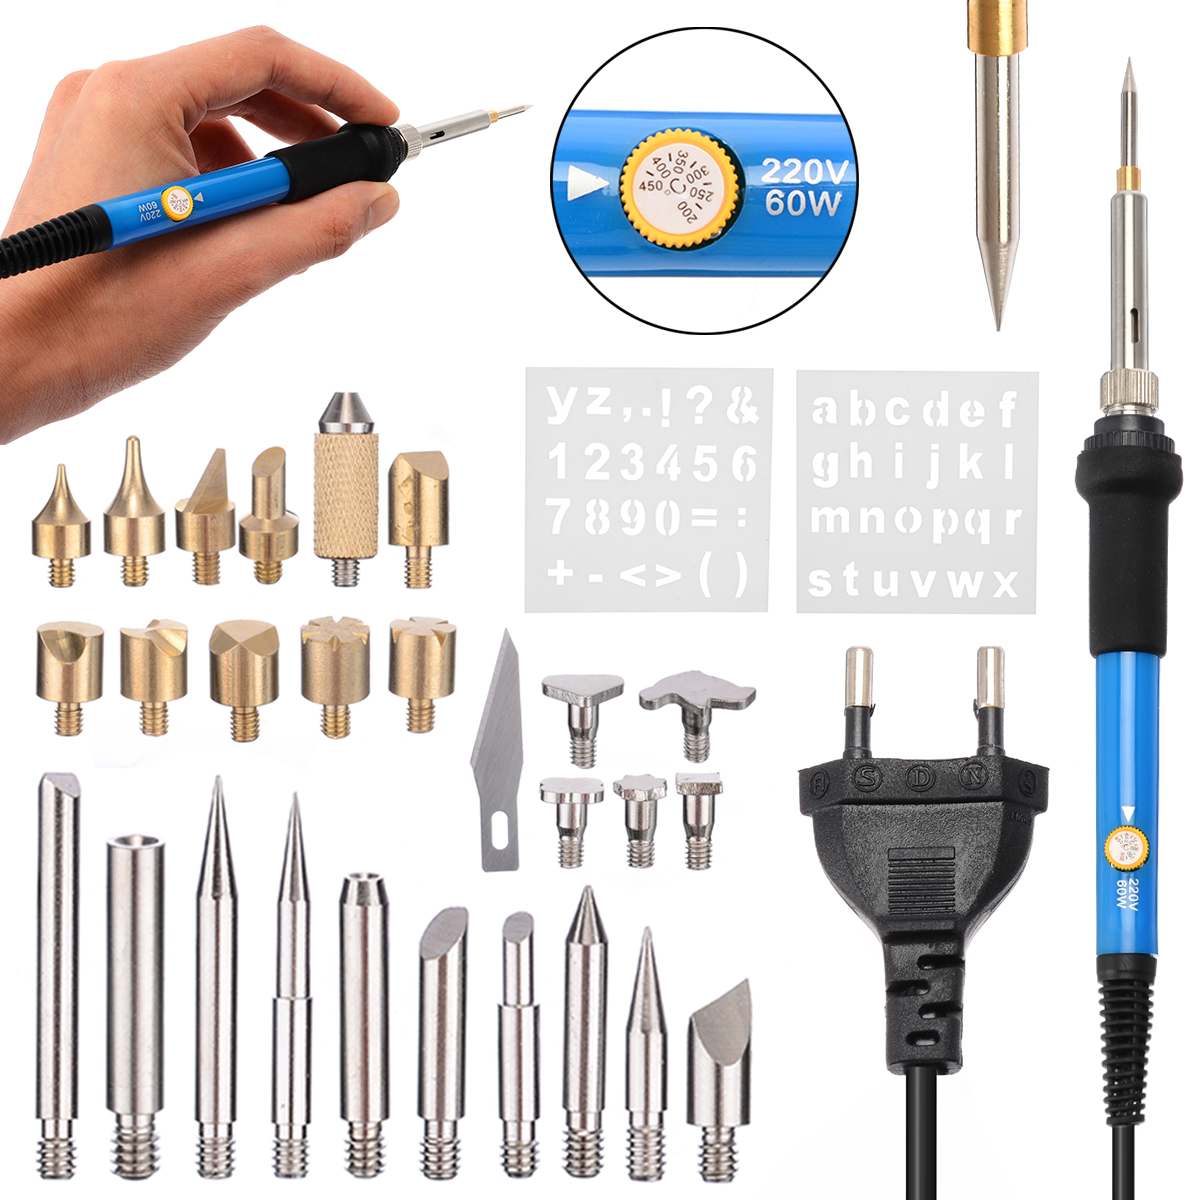 39Pcs Wood Burning Pen Tips Professional Wood Burning Kit Electric Welding Soldering Iron Ironing Accessory